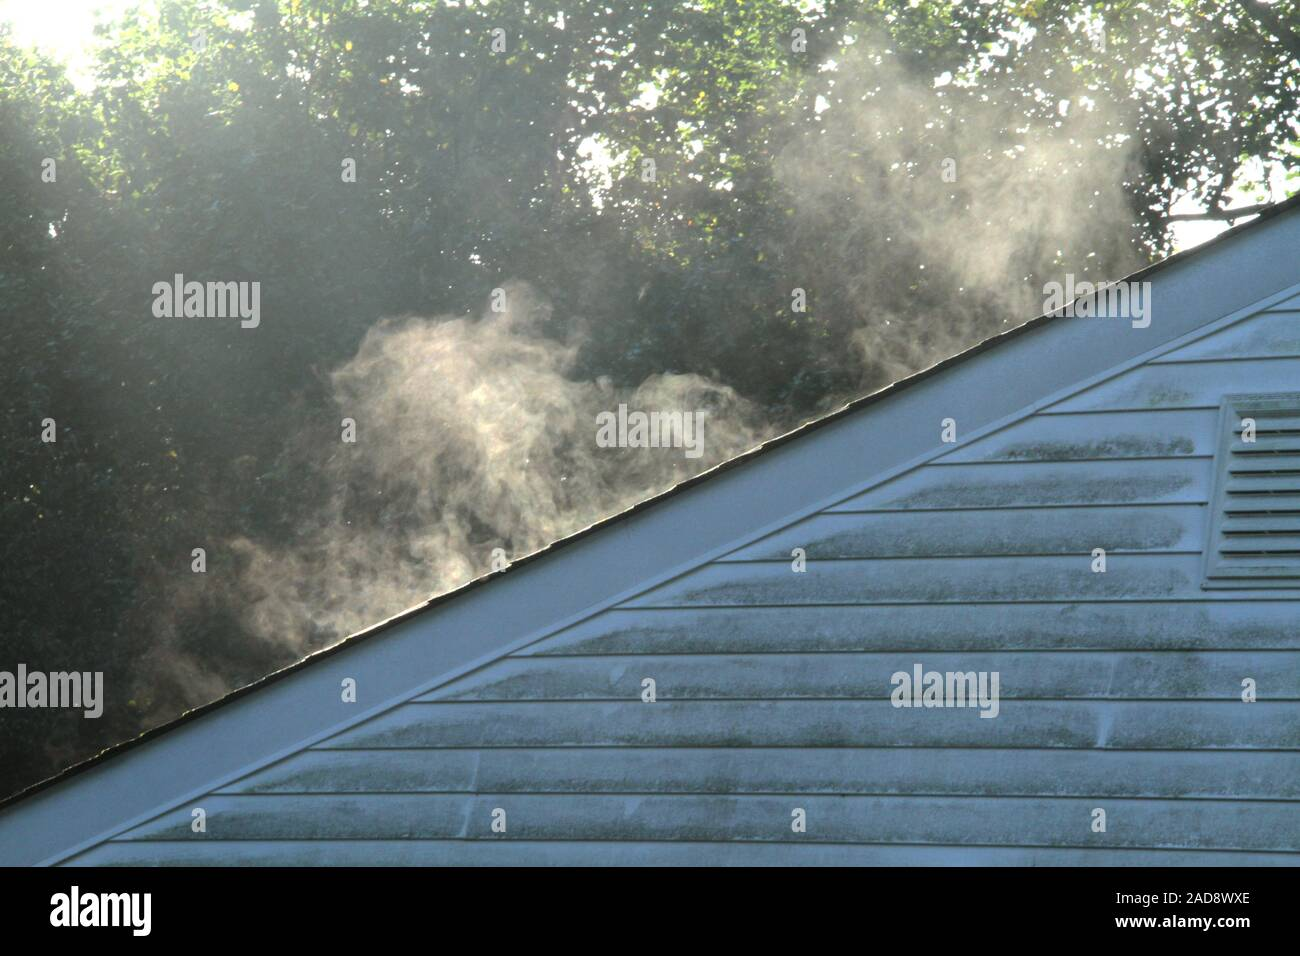 Vapors coming out of a house roof after rain. Stock Photo